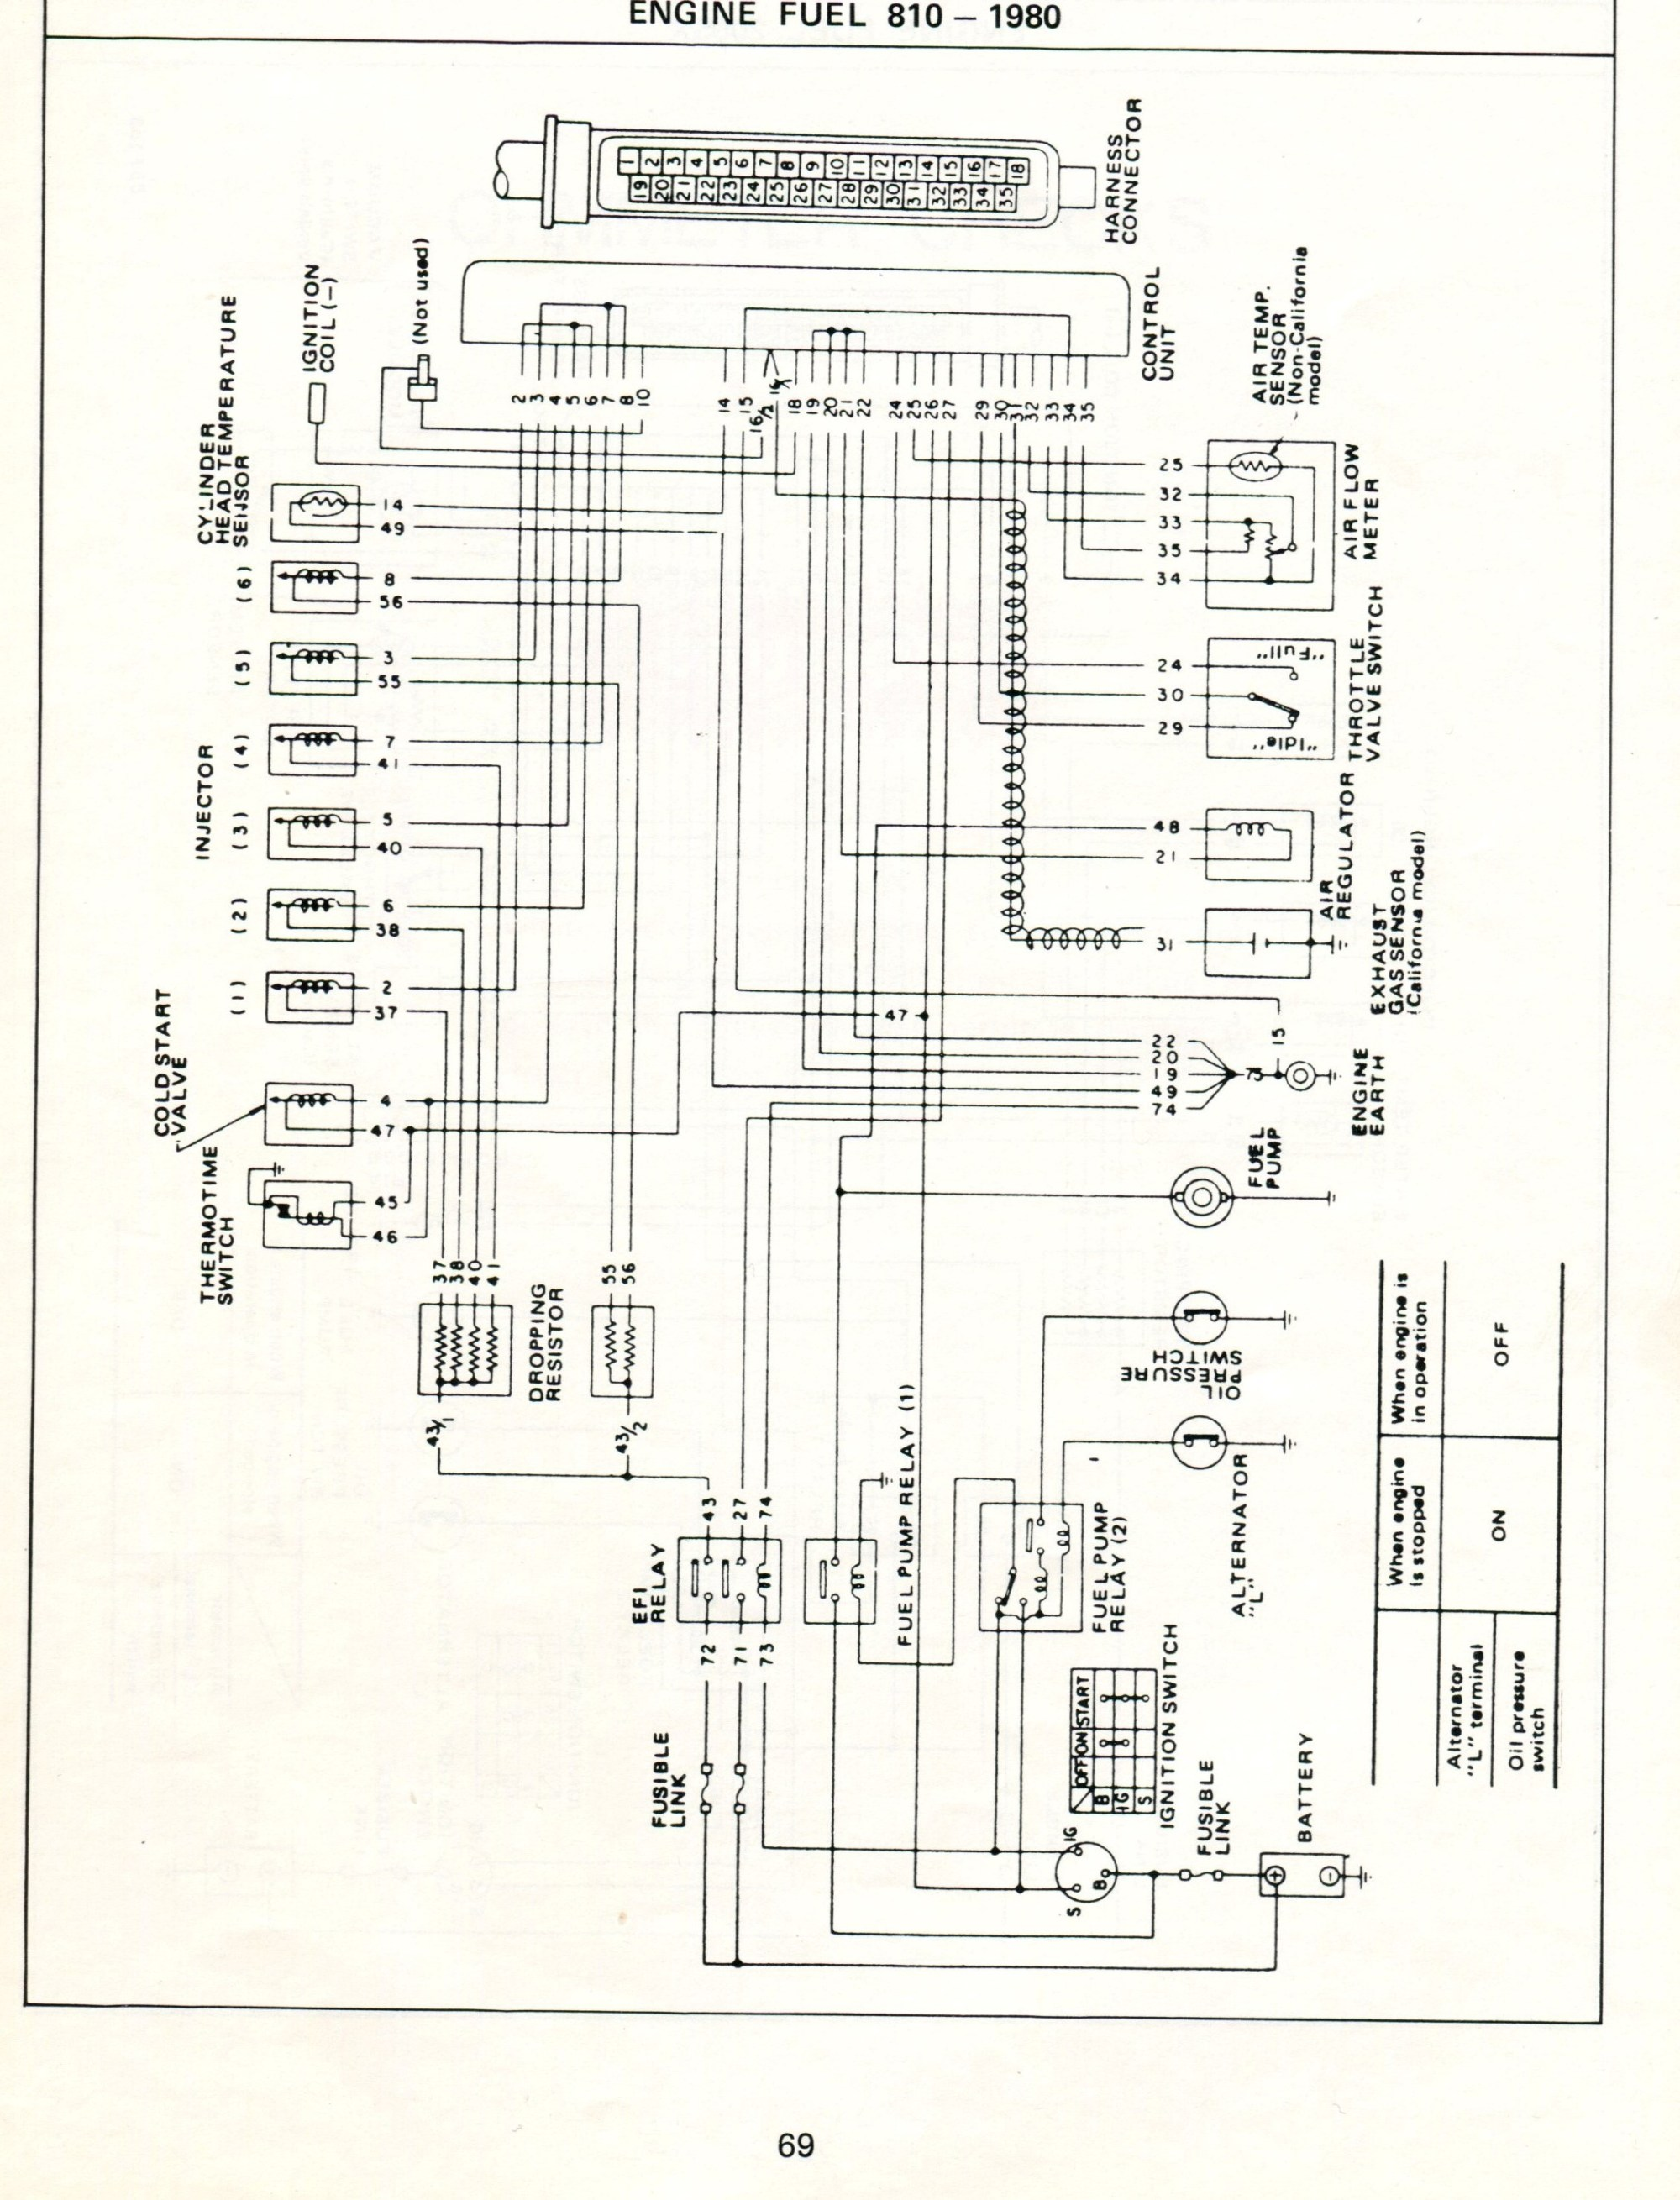 hight resolution of datsun electronic fuel injection wiring diagrams 280z 1976 wiring diagram 280z wiring diagram